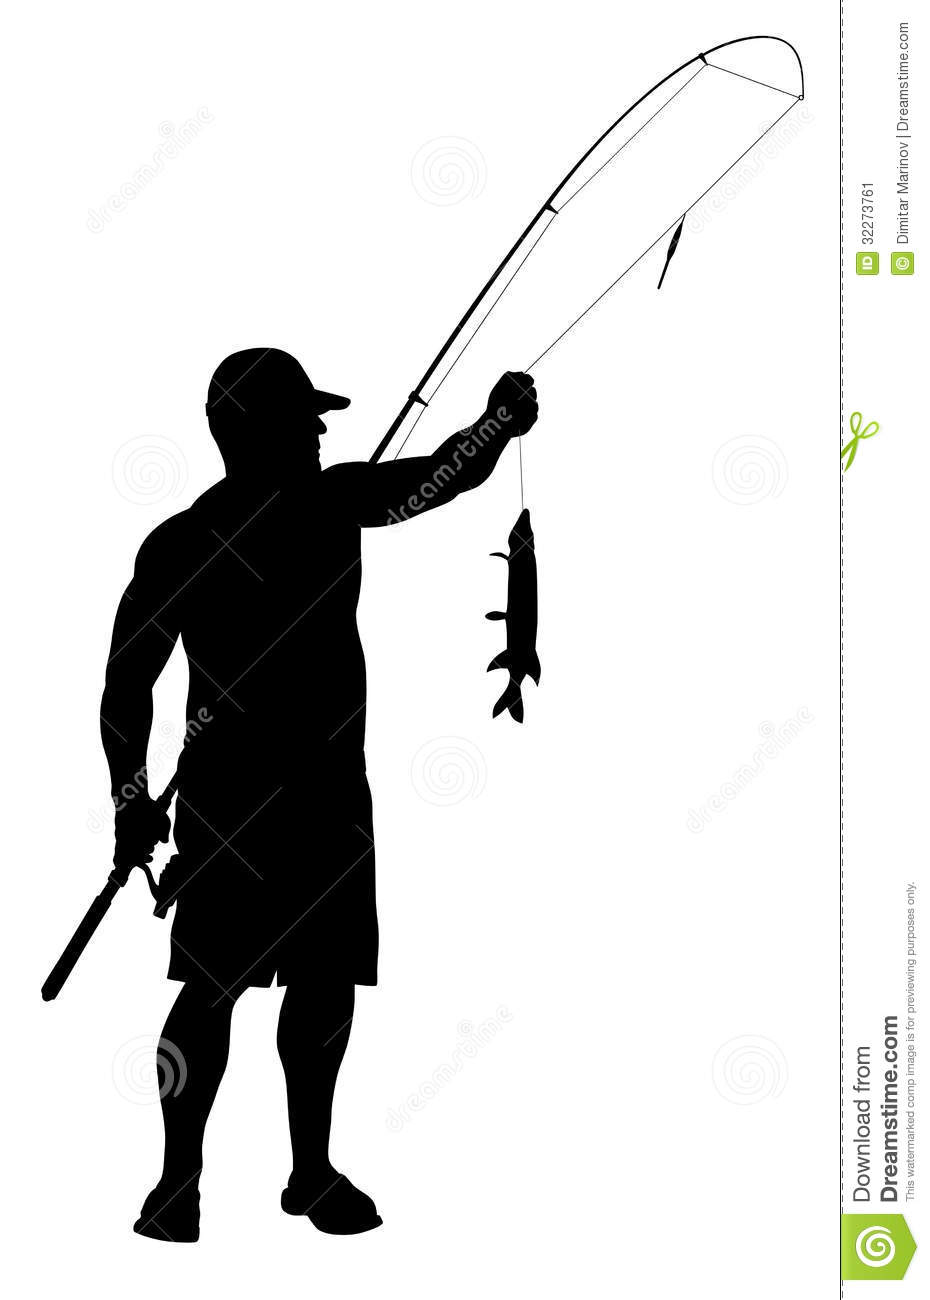 Vector illustration of fisherman silhouette.